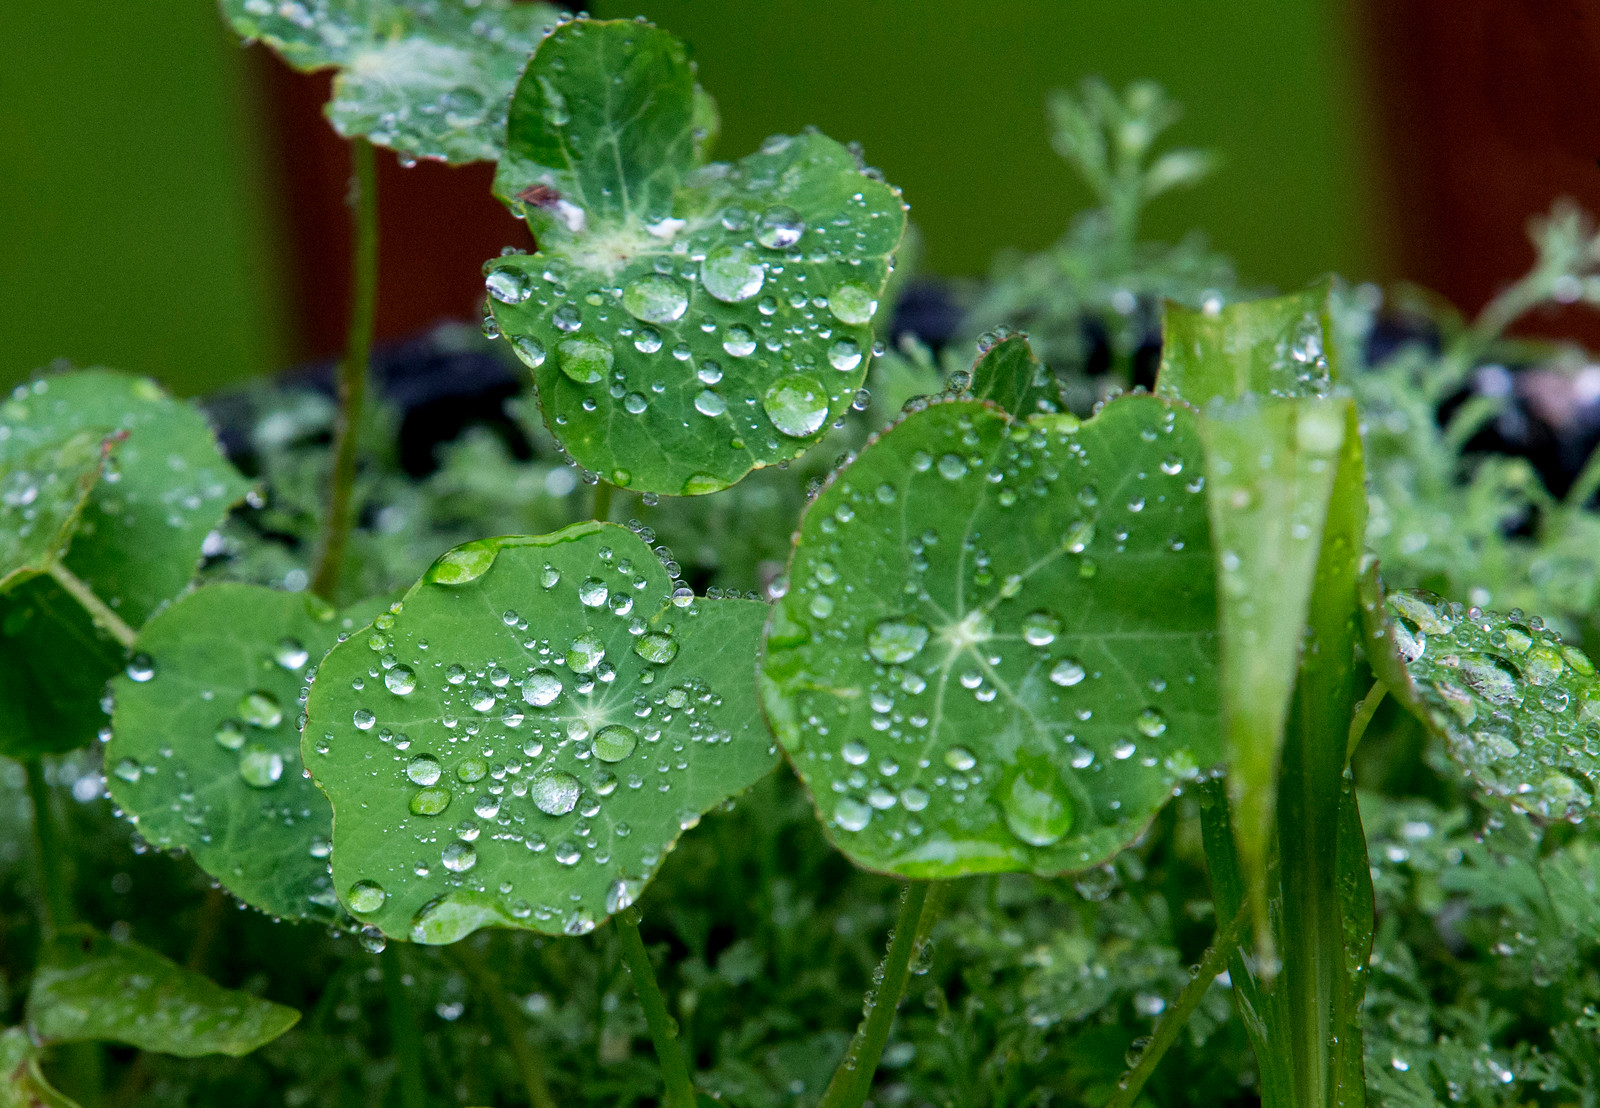 Green and wet